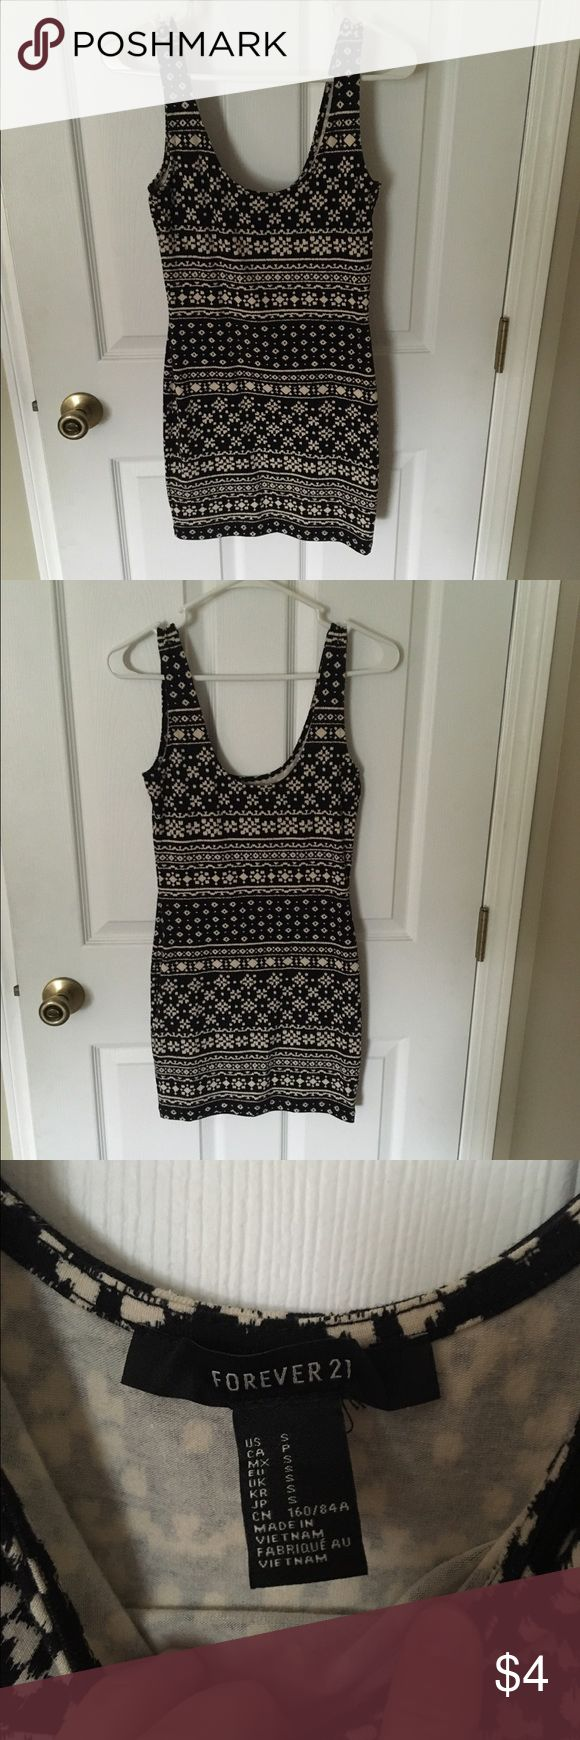 Forever 21 black and cream patterned bodycon dress Size small bodycon dress from forever 21. Like new condition. I'm almost certain I never wore it, but did remove the tags. Forever 21 Dresses Mini